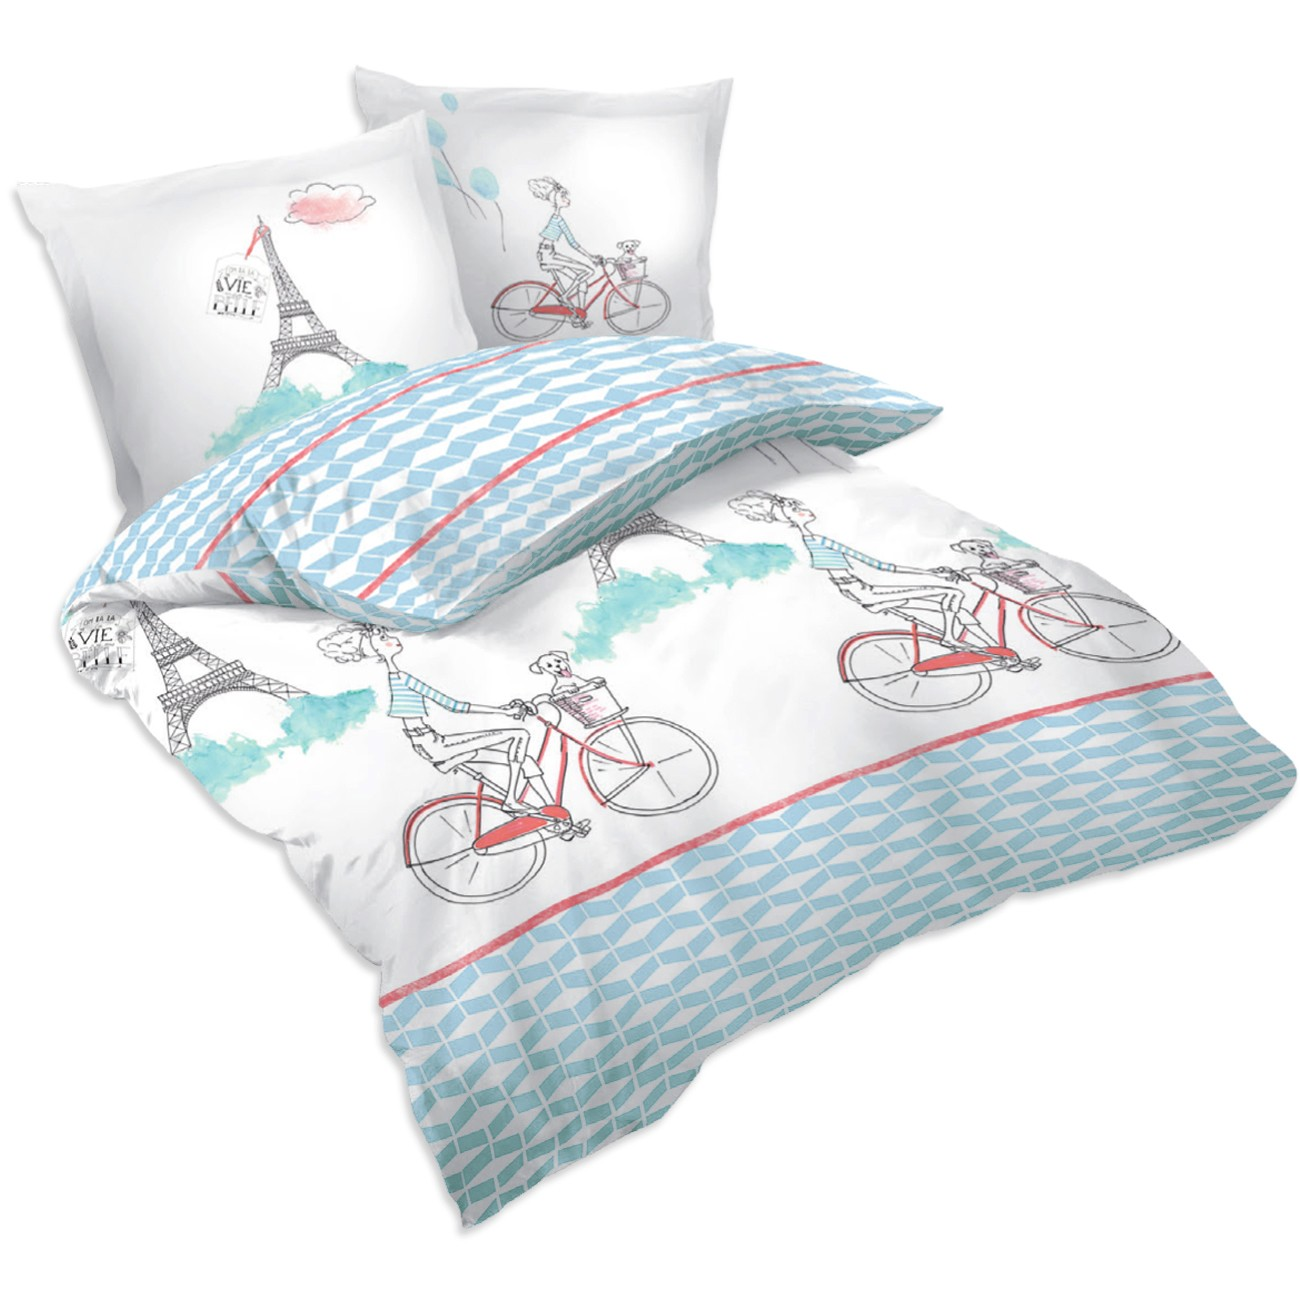 paris bicyclette parure de lit 100 coton housse de. Black Bedroom Furniture Sets. Home Design Ideas